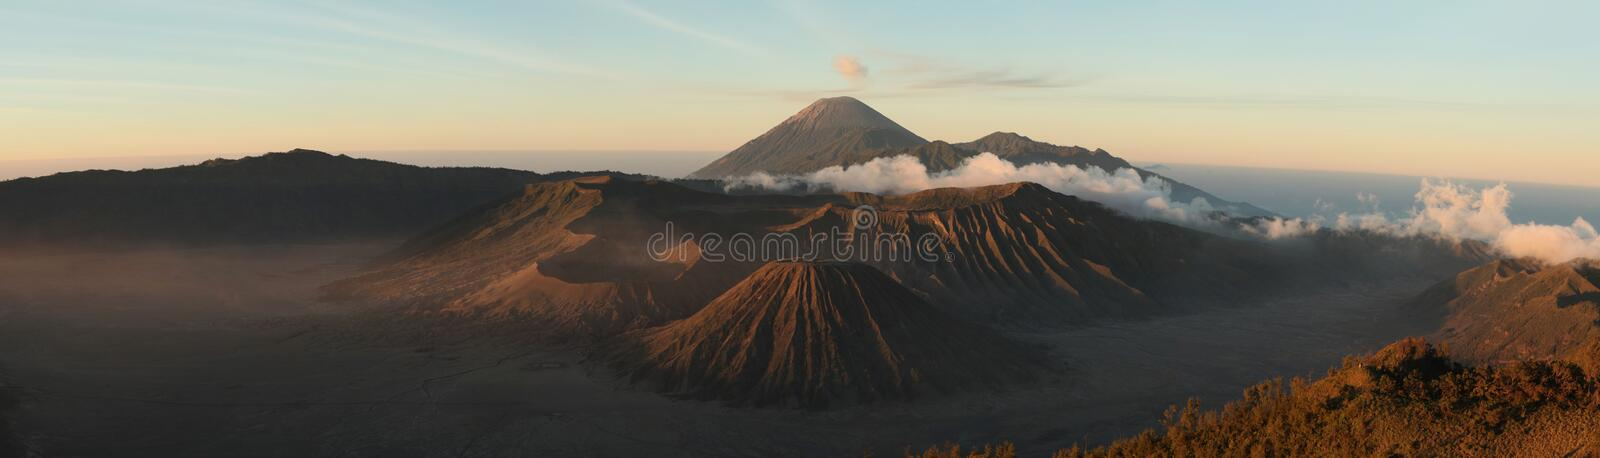 Sunrise over Mount Bromo and the Tengger Caldera in East Java, I. Sunrise over Mount Bromo (2, 329 m) and the Tengger Caldera in East Java, Indonesia. Panorama royalty free stock images